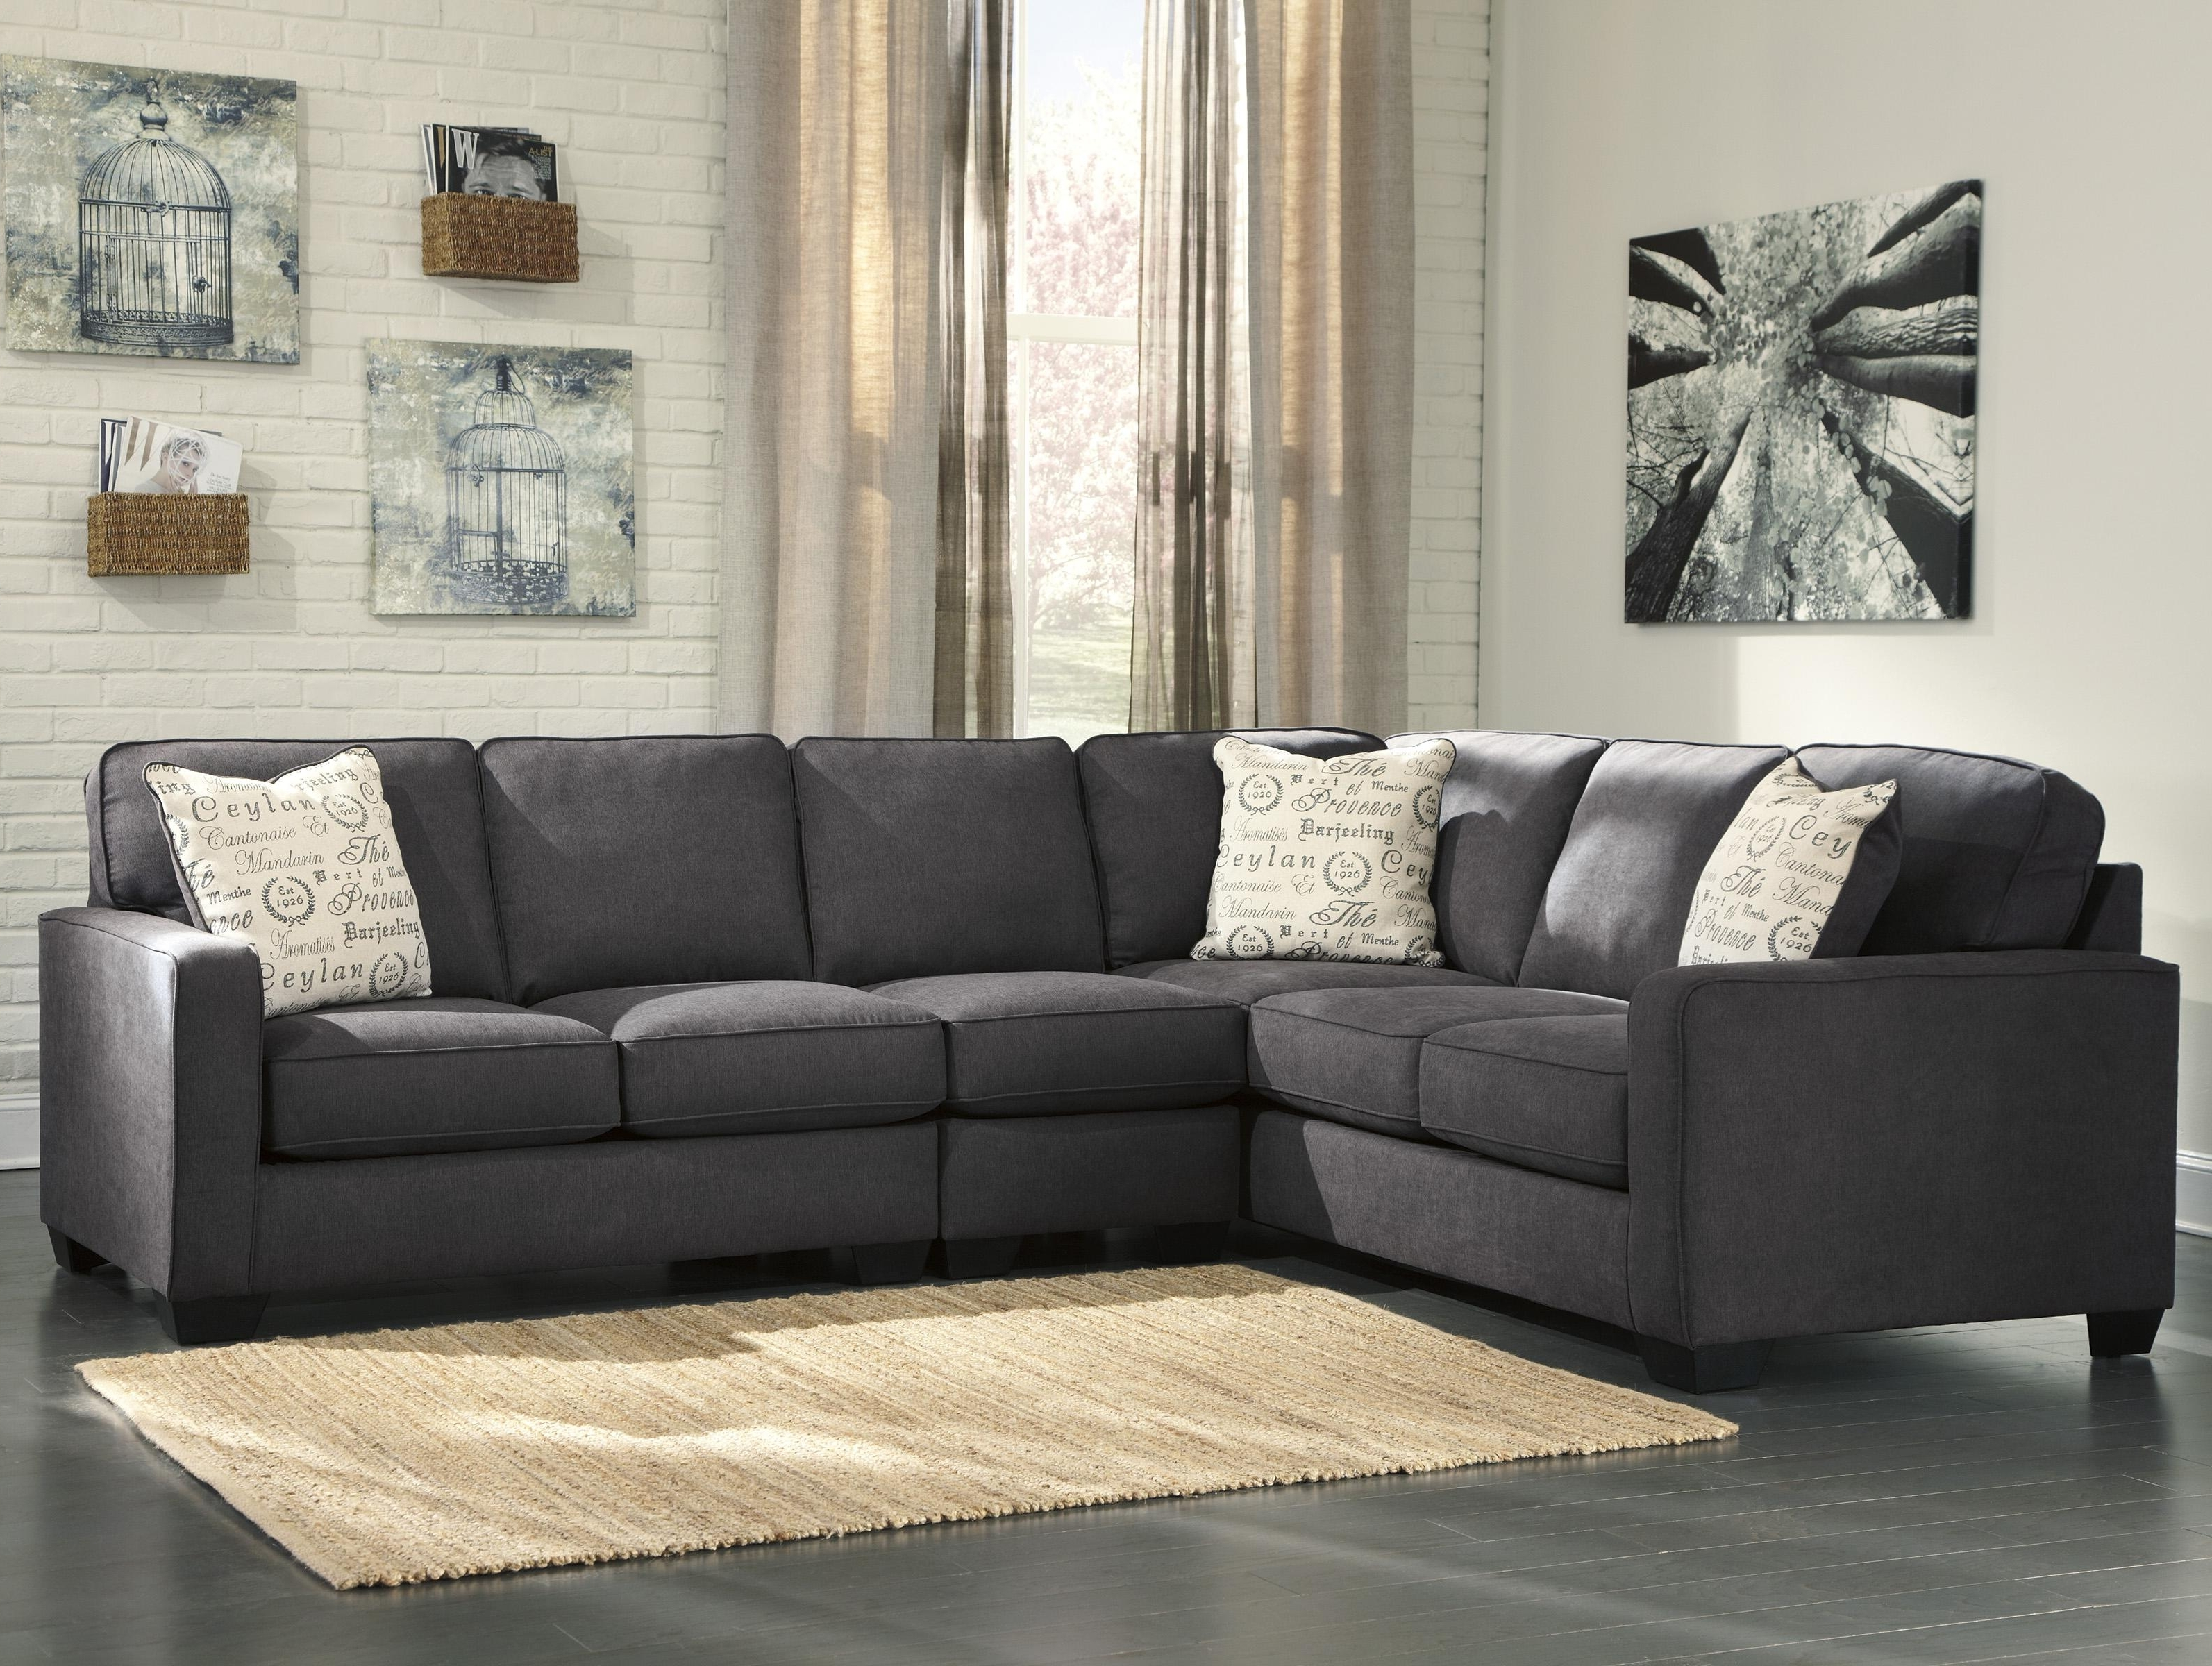 Fashionable Ashley Signature Design Alenya – Charcoal 3 Piece Sectional With In Sectional Sofas At Ashley (View 6 of 20)